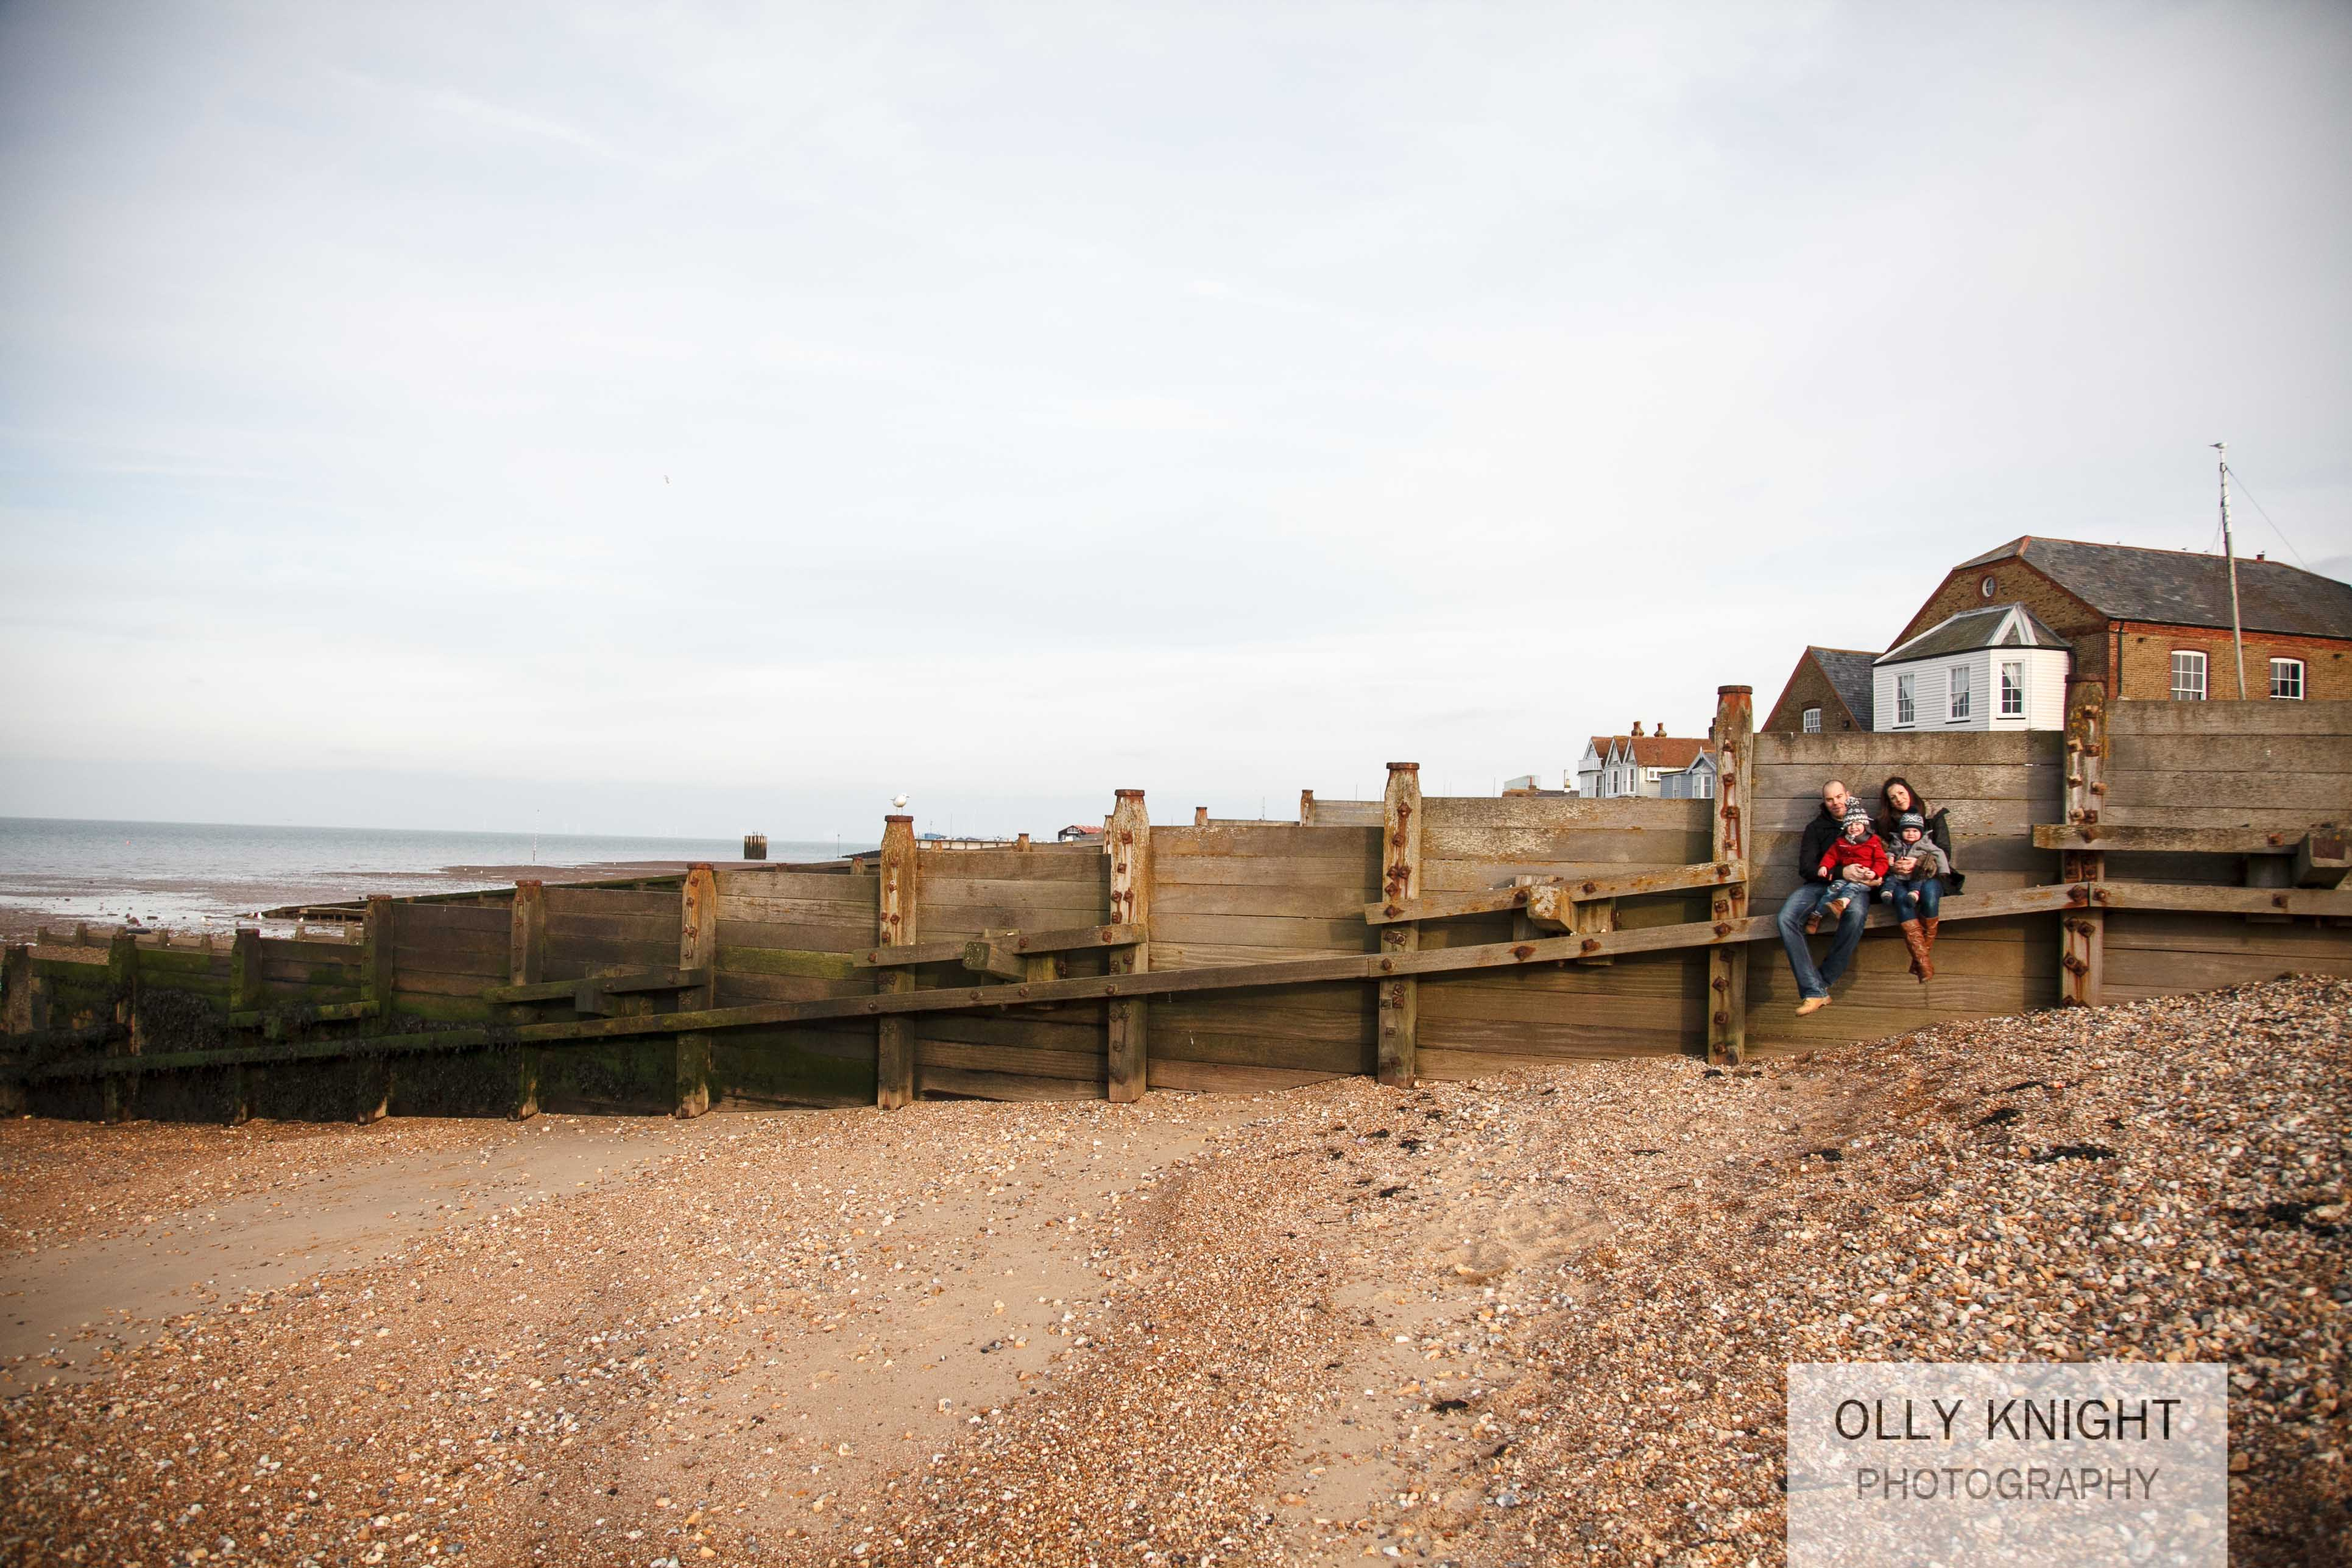 Dan & Kirsty Family Photo Shoot at Whitstable Beach